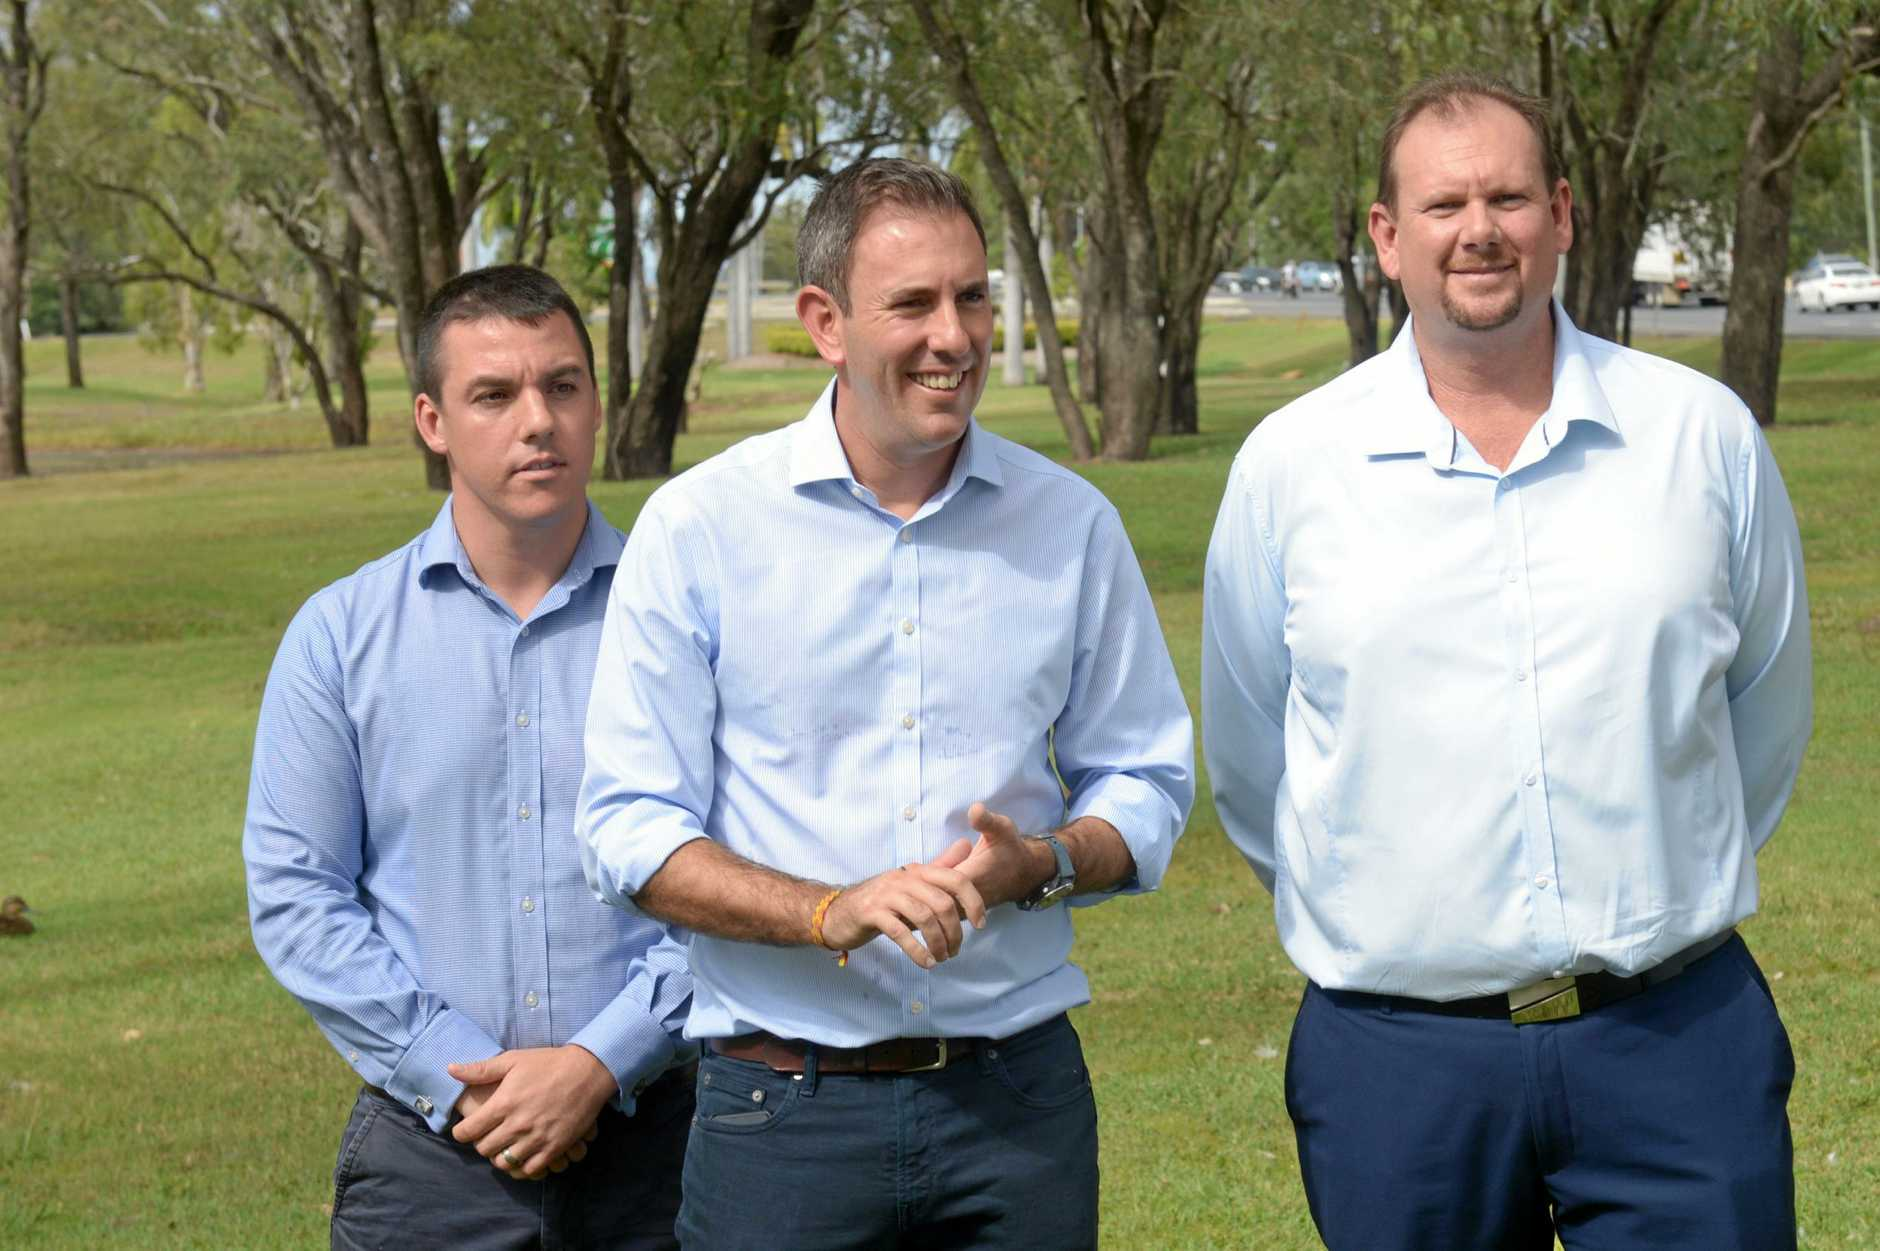 Zac Beers, Labor Candidate for Flynn; Jim Chalmers, Shadow Minister for  Finance; and Russell Robertson, Federal Labour Candidate for Campricornia pledge funds to upgrade the Rockhampton-Gladstone highway